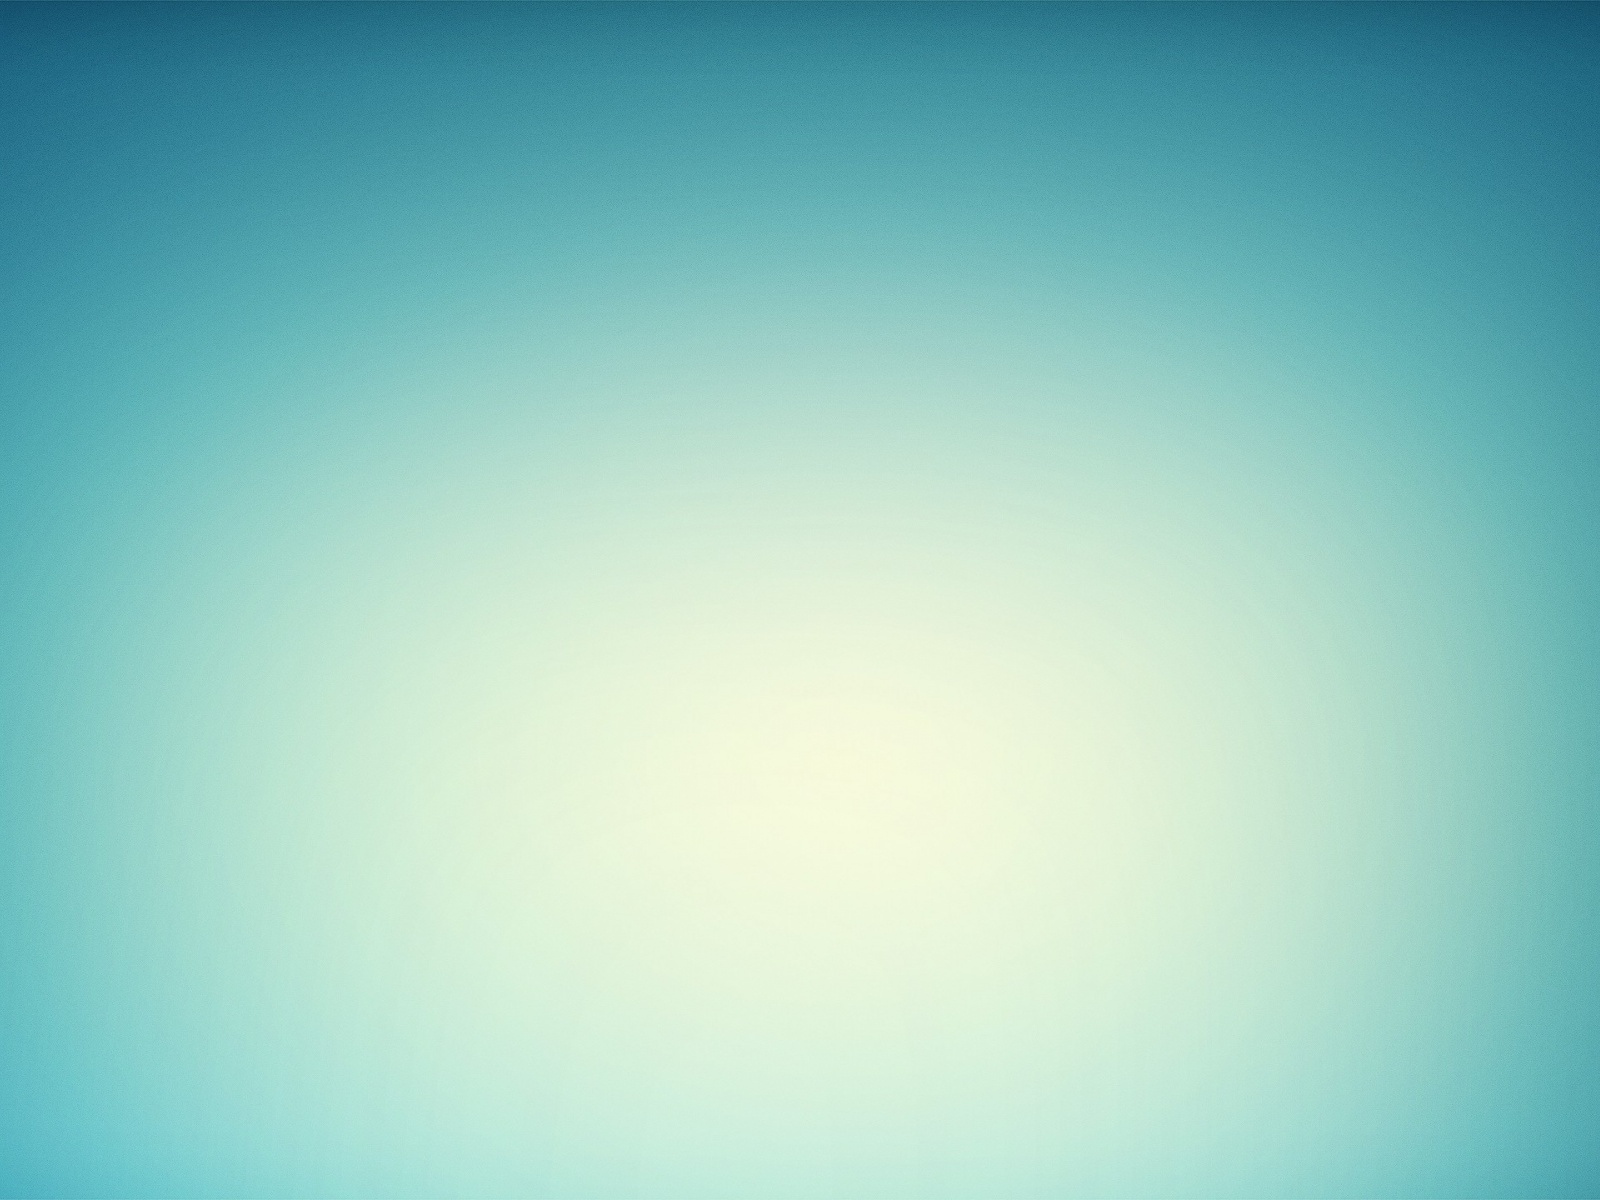 clean blue background wallpapers 43569 1600x1200jpg 1600x1200